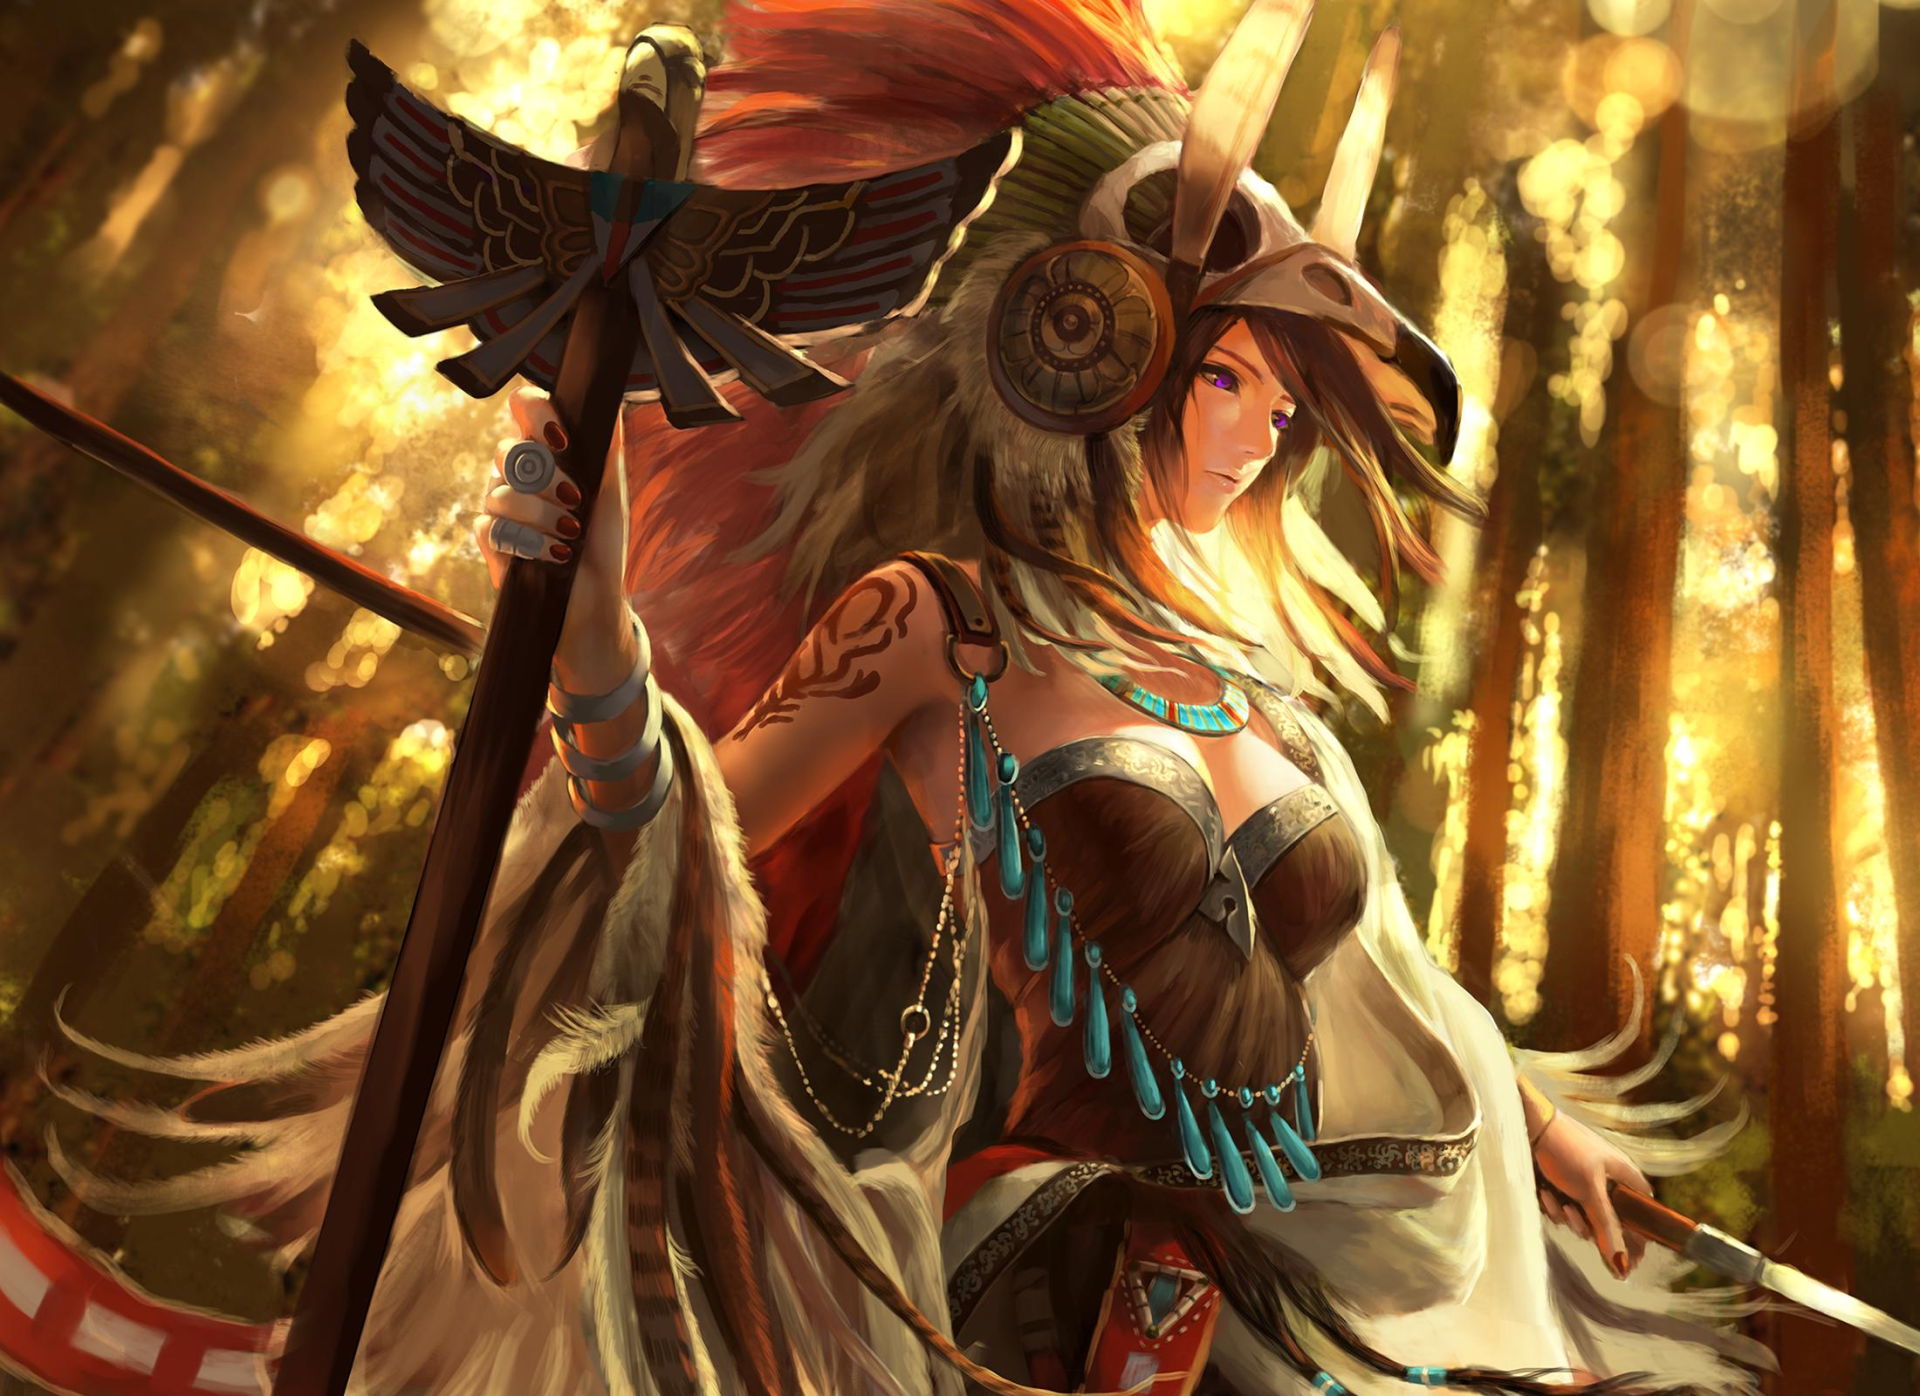 Fantasy - Women Warrior  Headdress Tattoo Staff Woman Wallpaper